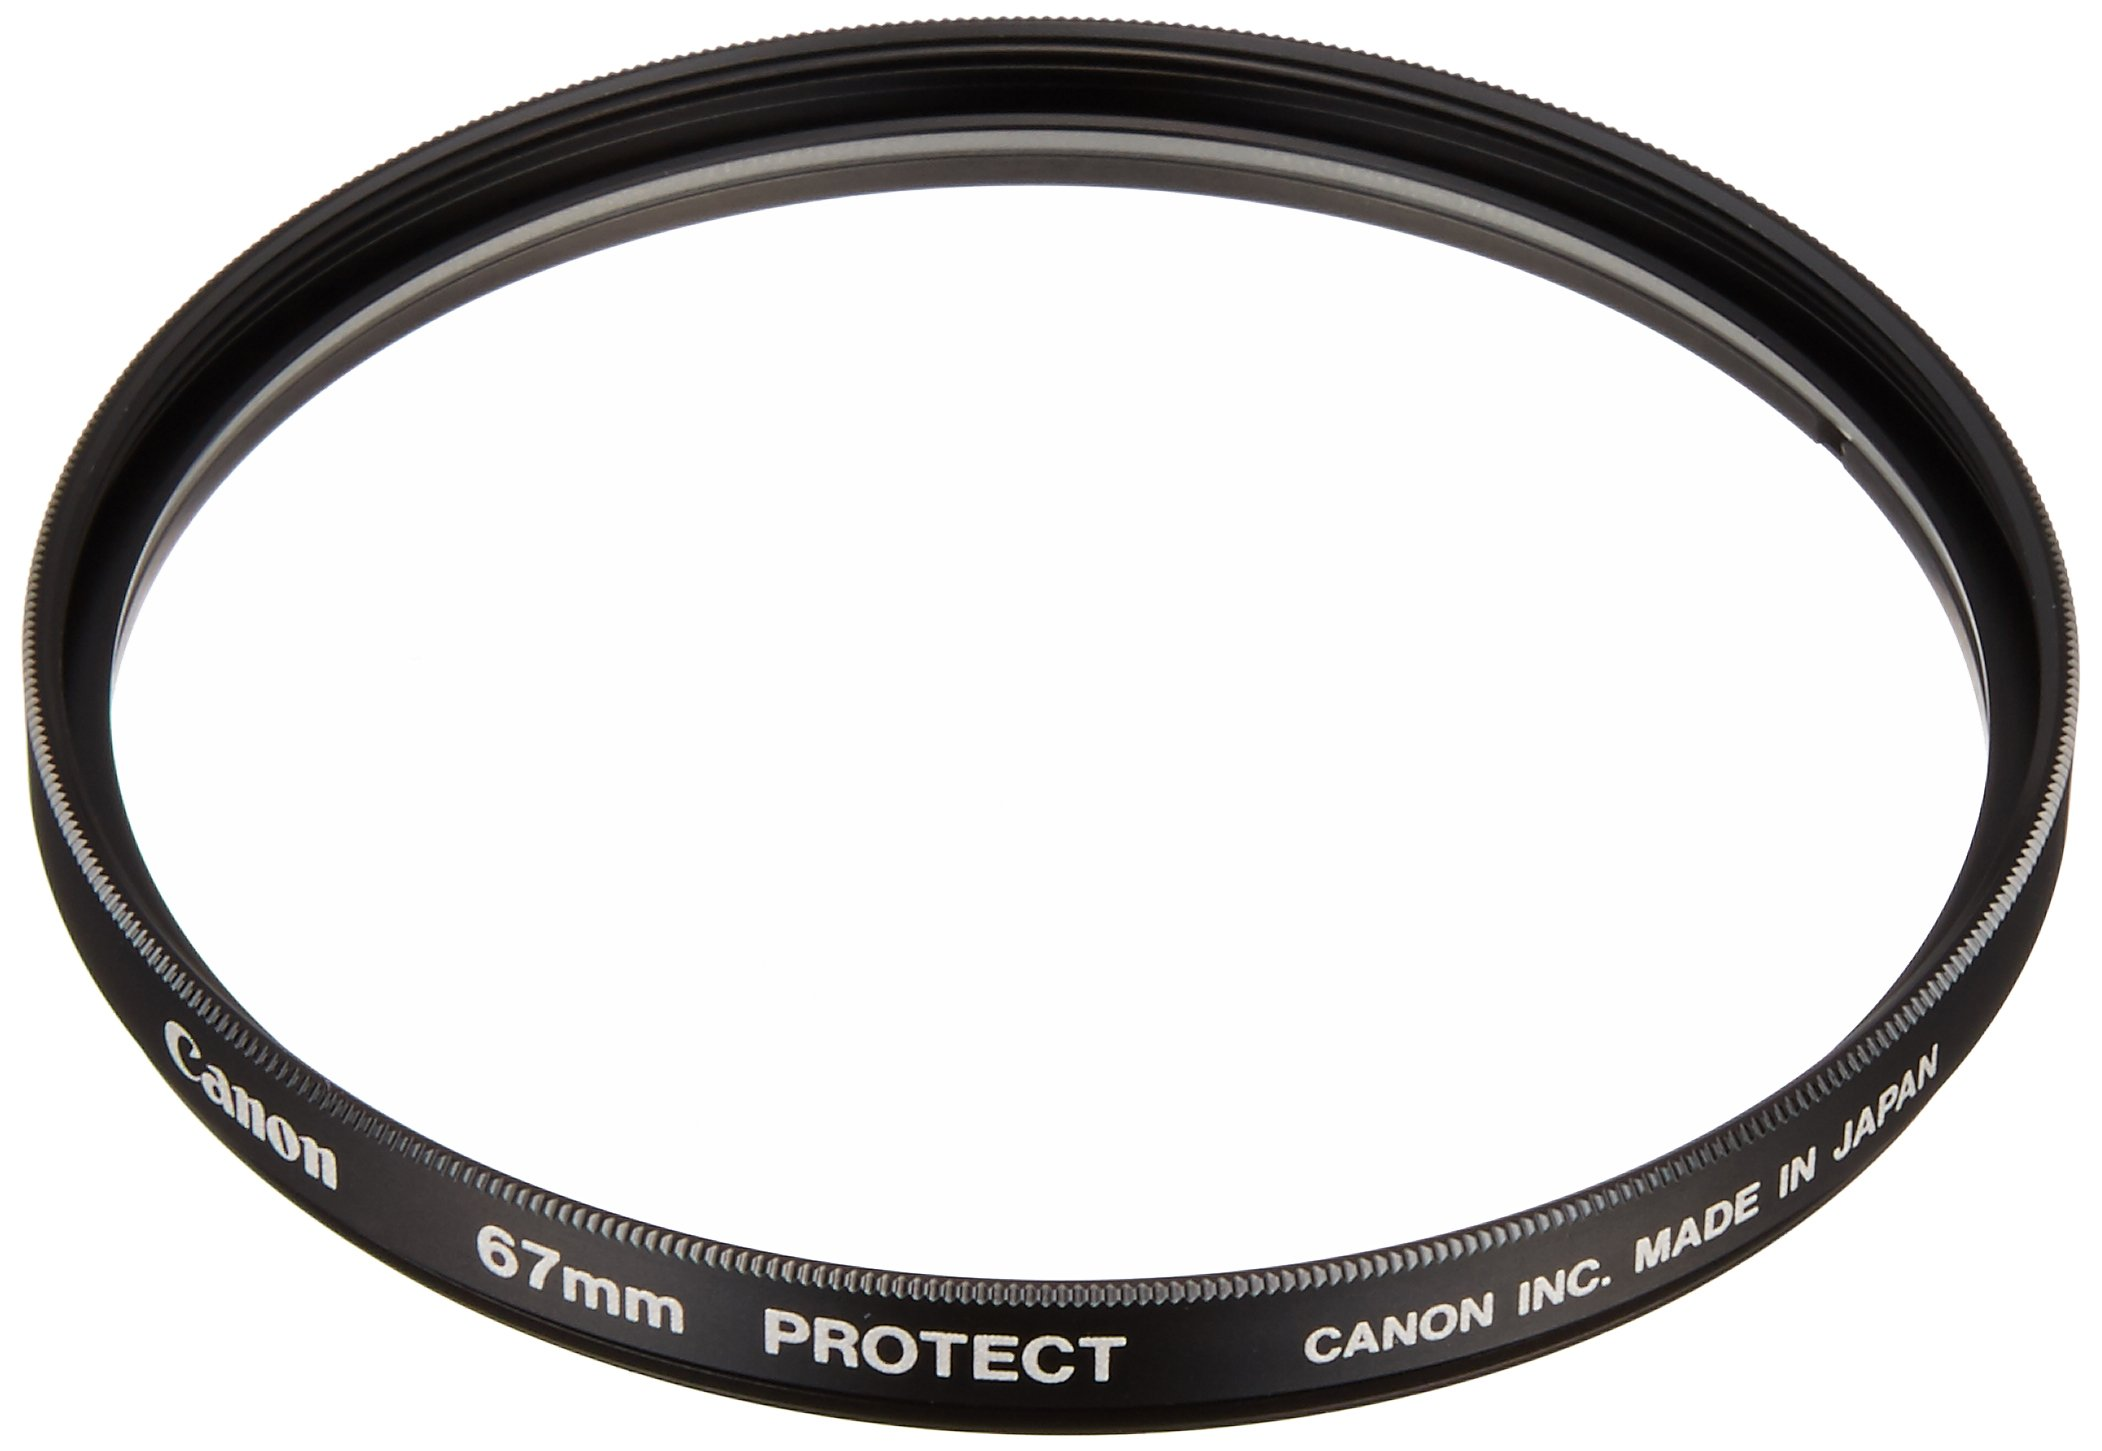 Canon Cameras US 2598A001 67mm Protect Filter